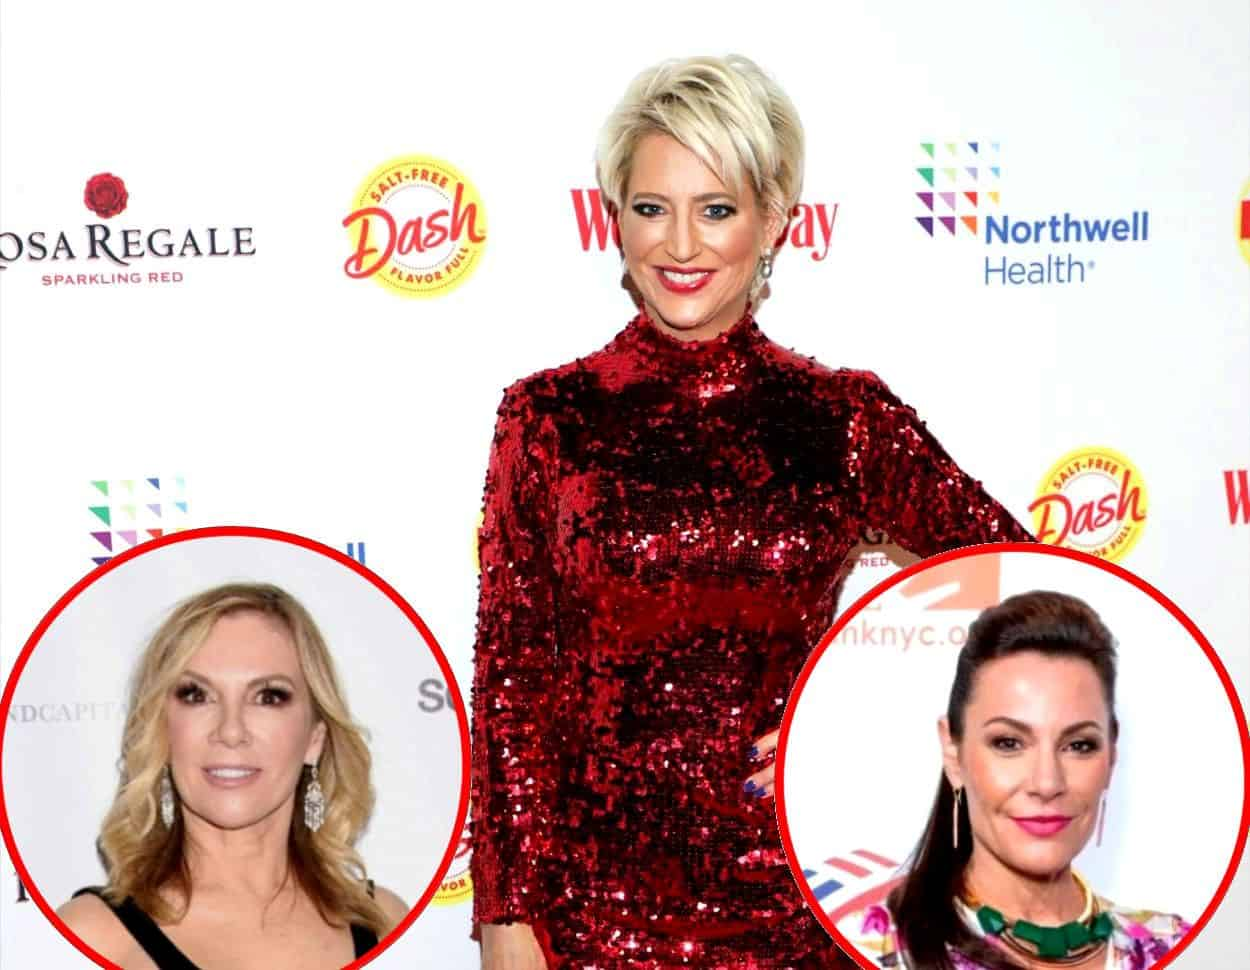 """Dorinda Medley Says She's """"Confused"""" By Way She Was Fired From RHONY, Admits She Wanted Opportunity To Redeem Herself As She Shades Ramona Singer and Luann de Lesseps"""